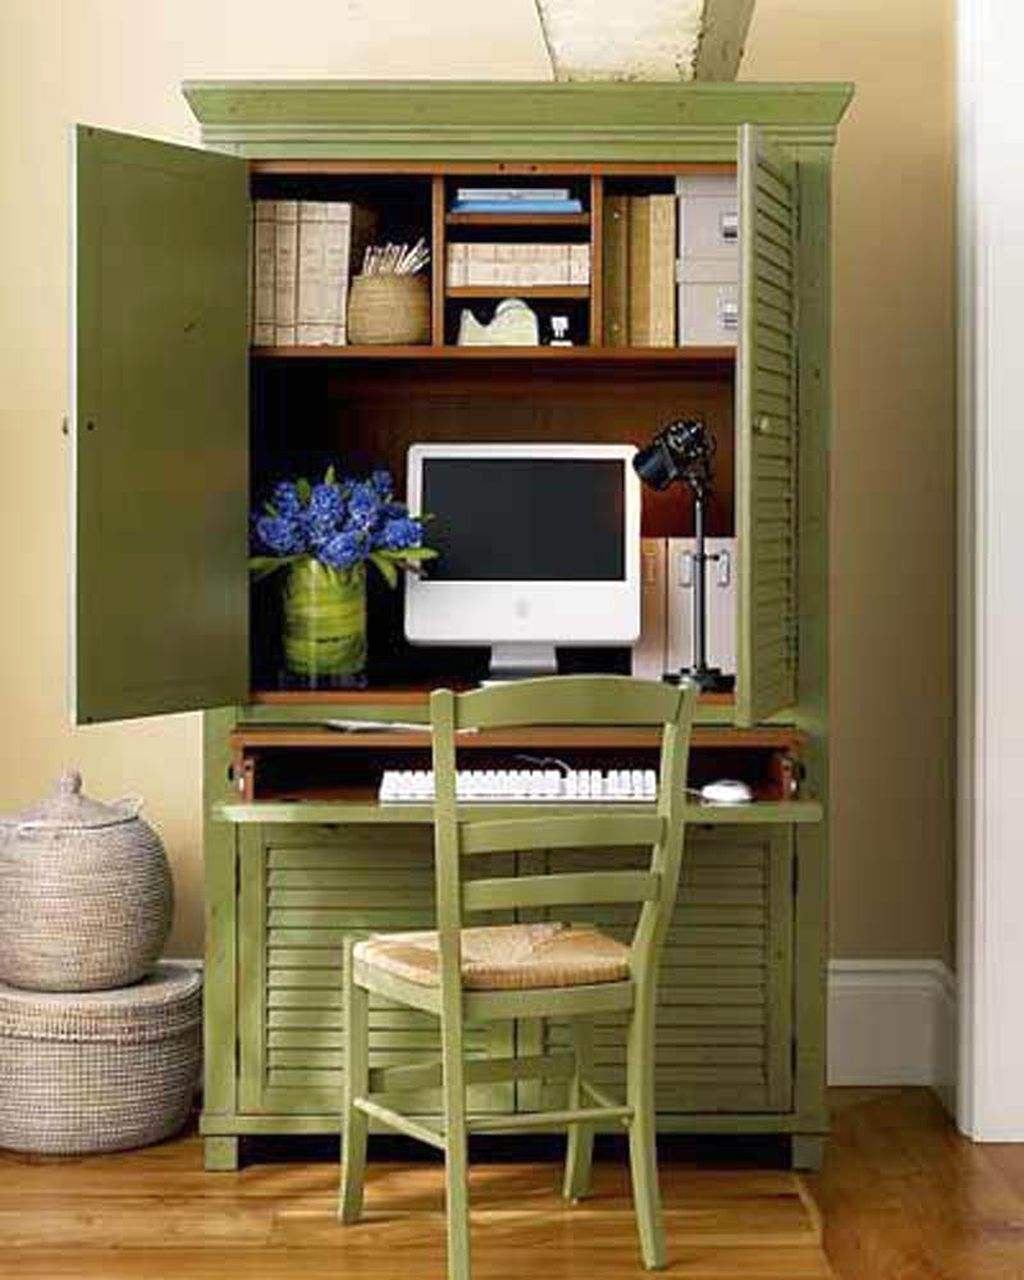 Small Home Office Design Ideas: Green Cupboard Home Office Design Ideas For Small Spaces